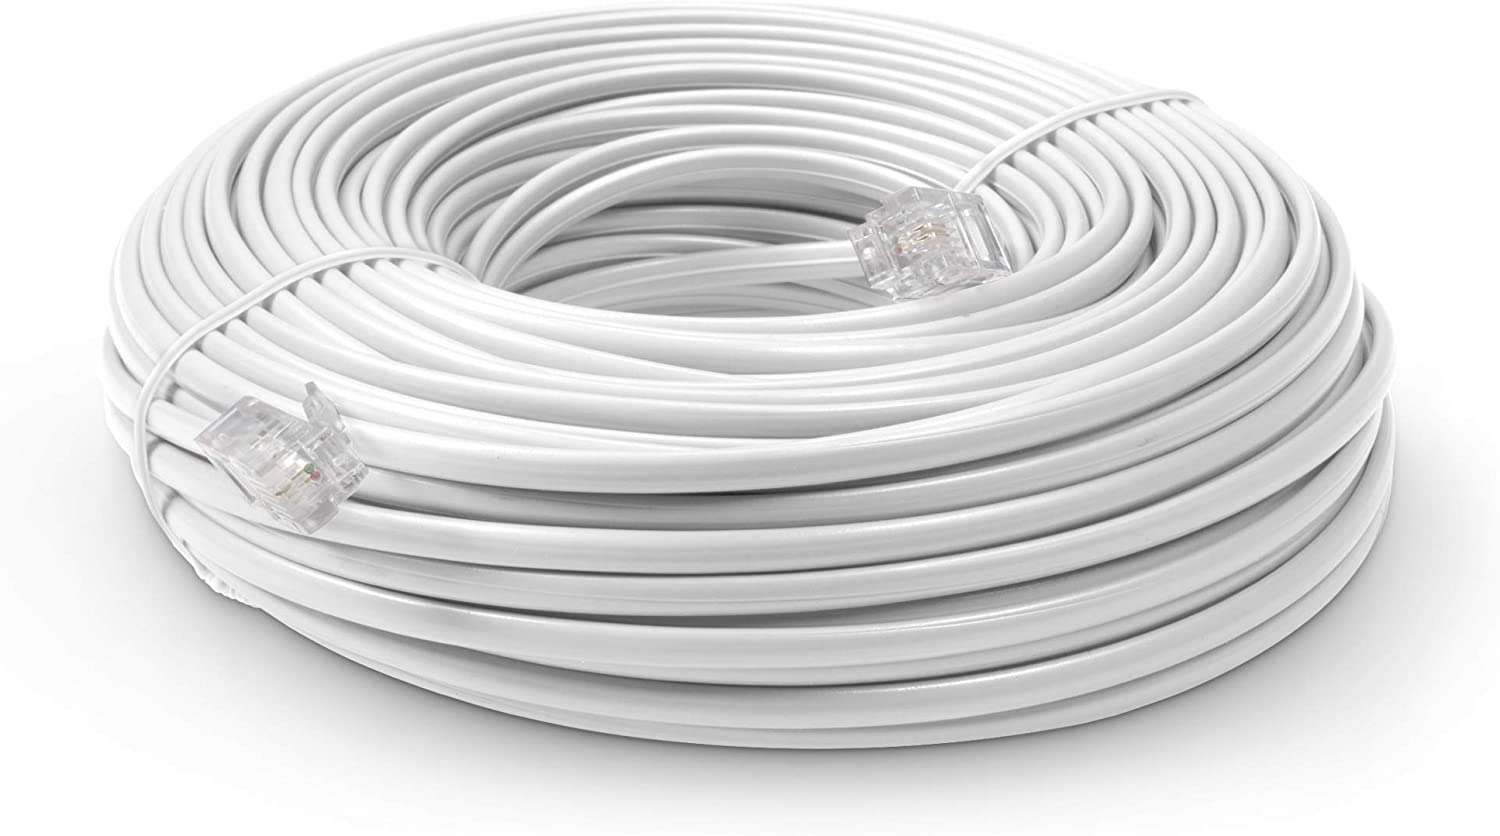 Phone Line Cord 100 Feet - Modular Telephone Extension Cord 100 Feet - 2 Conductor (2 pin, 1 line) Cable - Works Great with FAX, AIO, and Other Machines - White